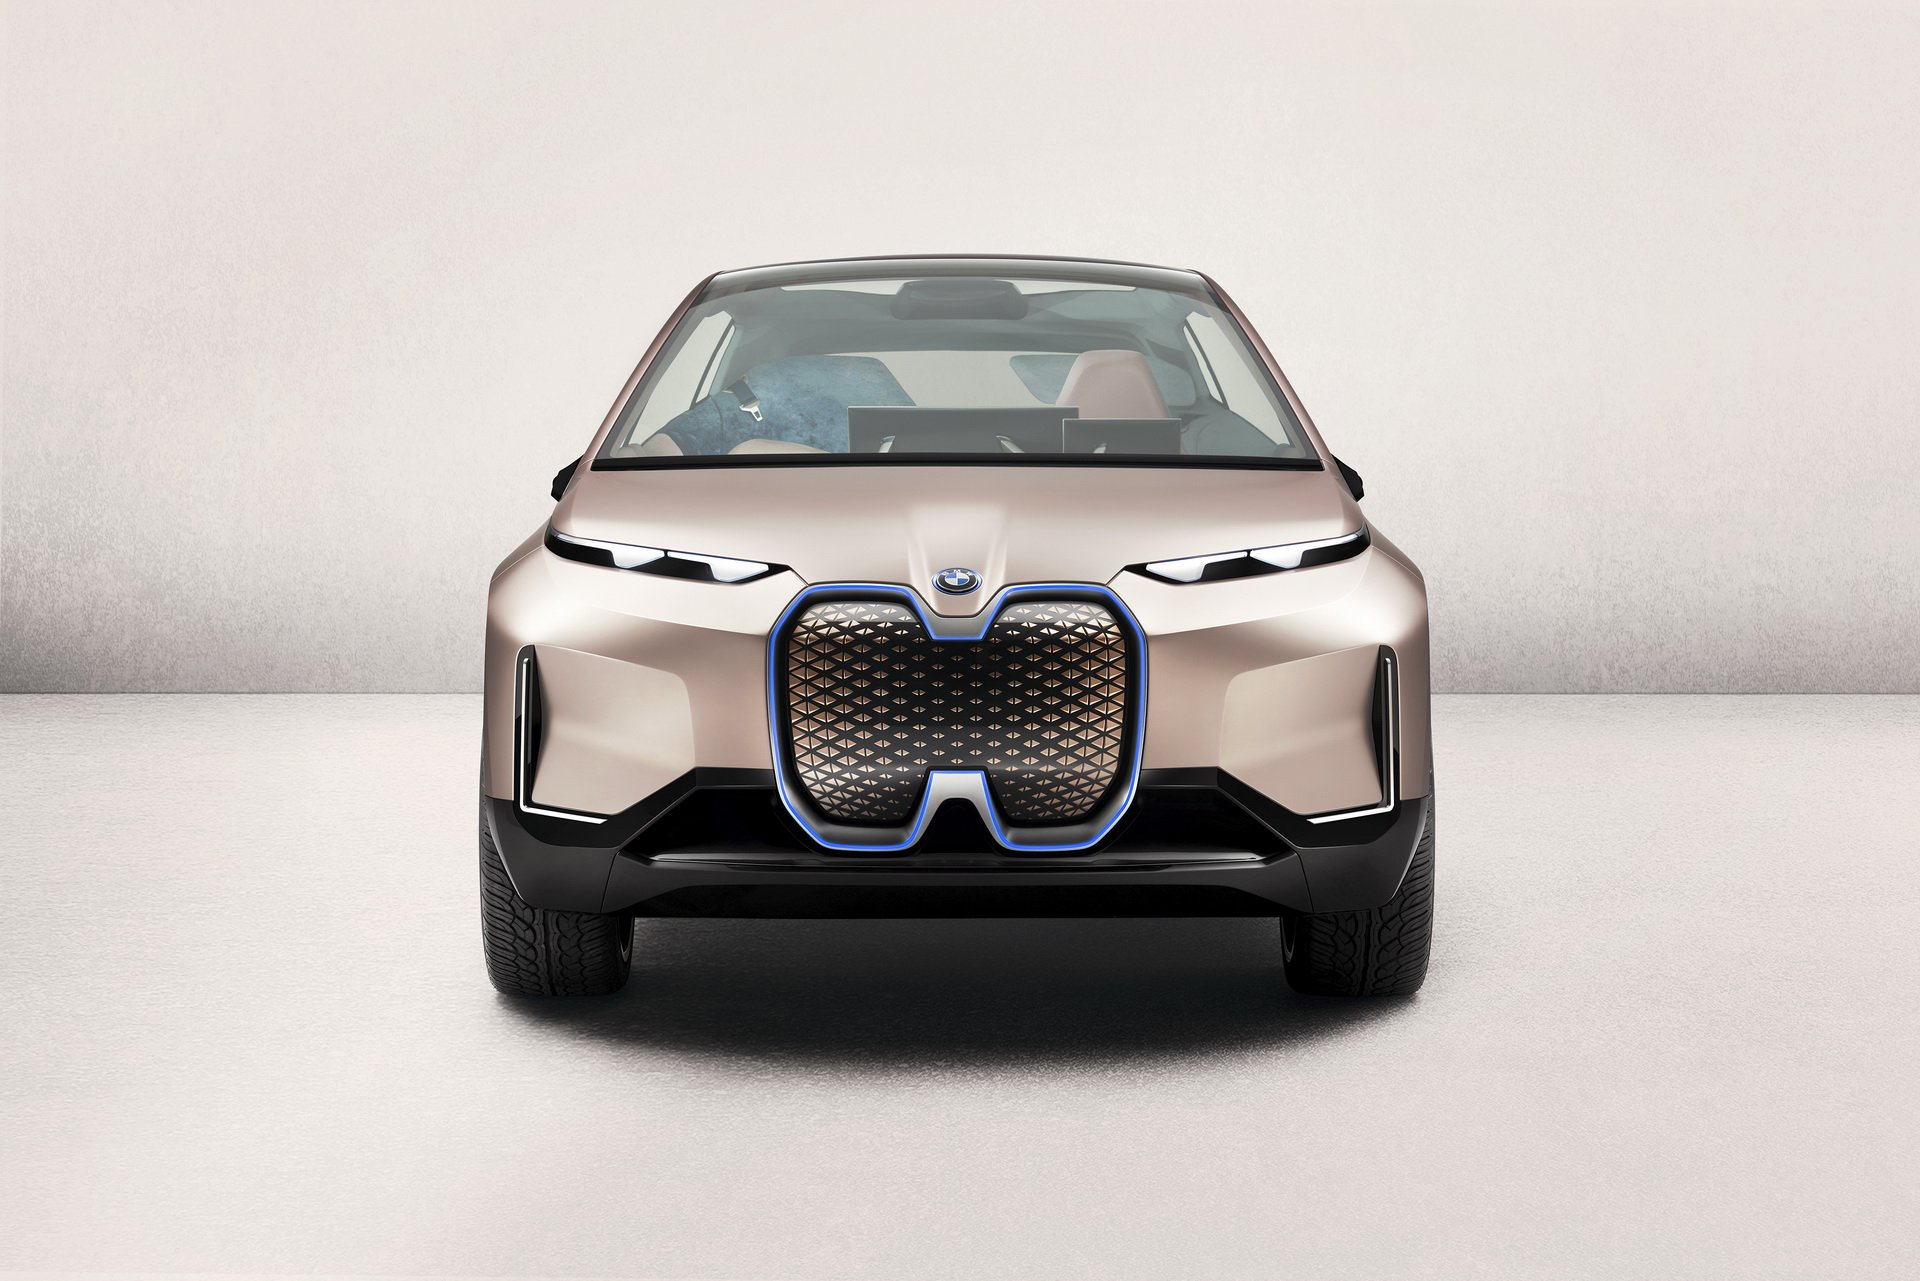 BMW Chief Designer Adrian van Hooydonk said during the recently concluded Los-Angeles Auto Show that the all-electric iNext SUV would inherit most of its stylistic features from the iNext Vision Concept when it enters mass production